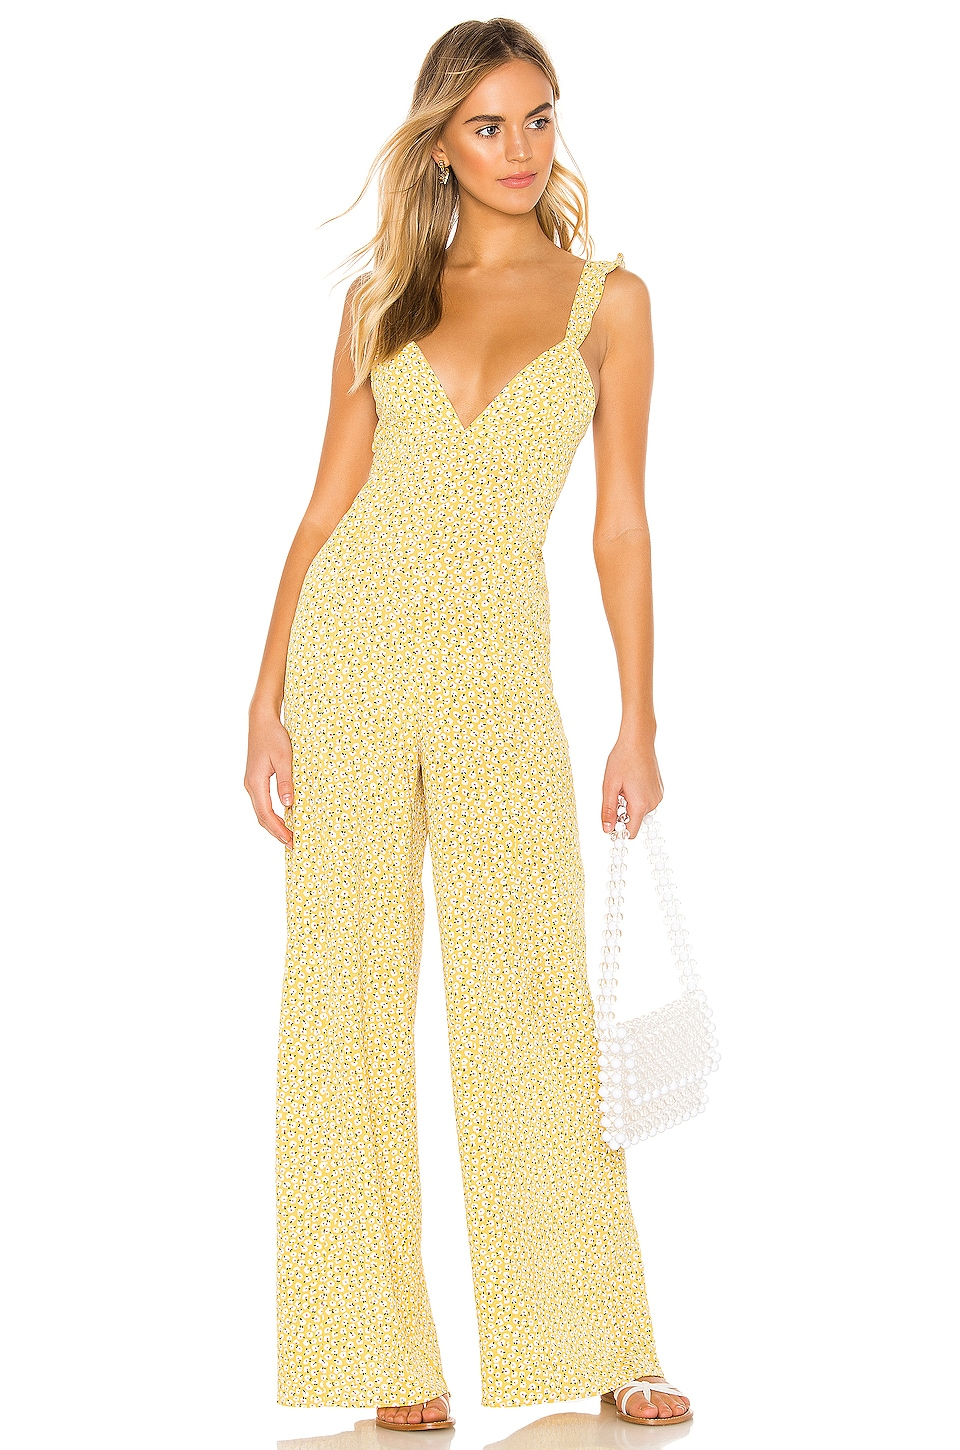 Endless Summer Jilly Jumpsuit in Honeysuckle Floral